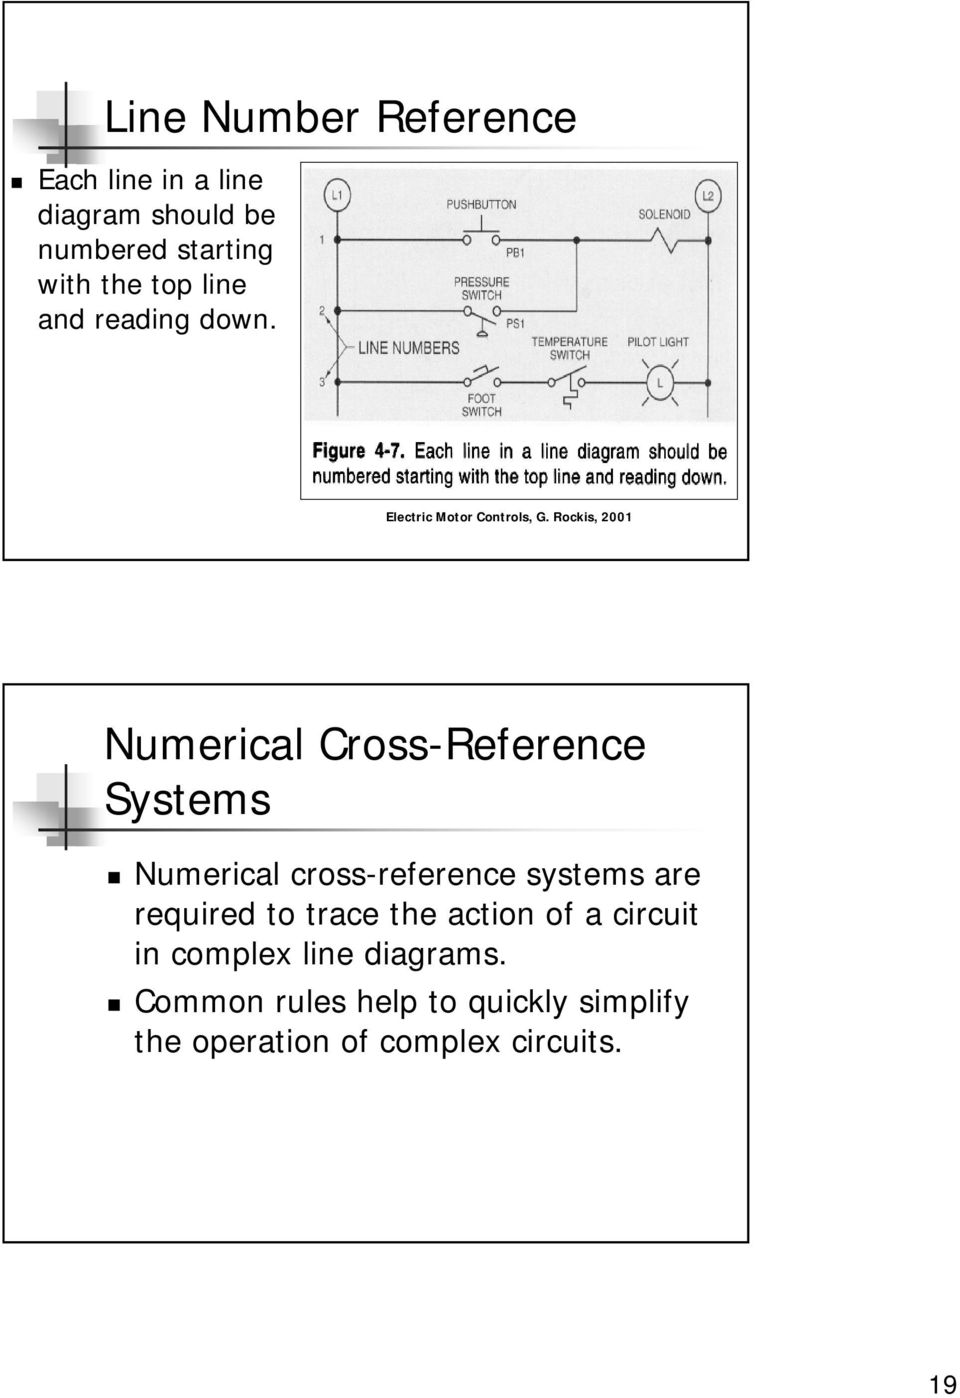 hight resolution of numerical cross reference systems numerical cross reference systems are required